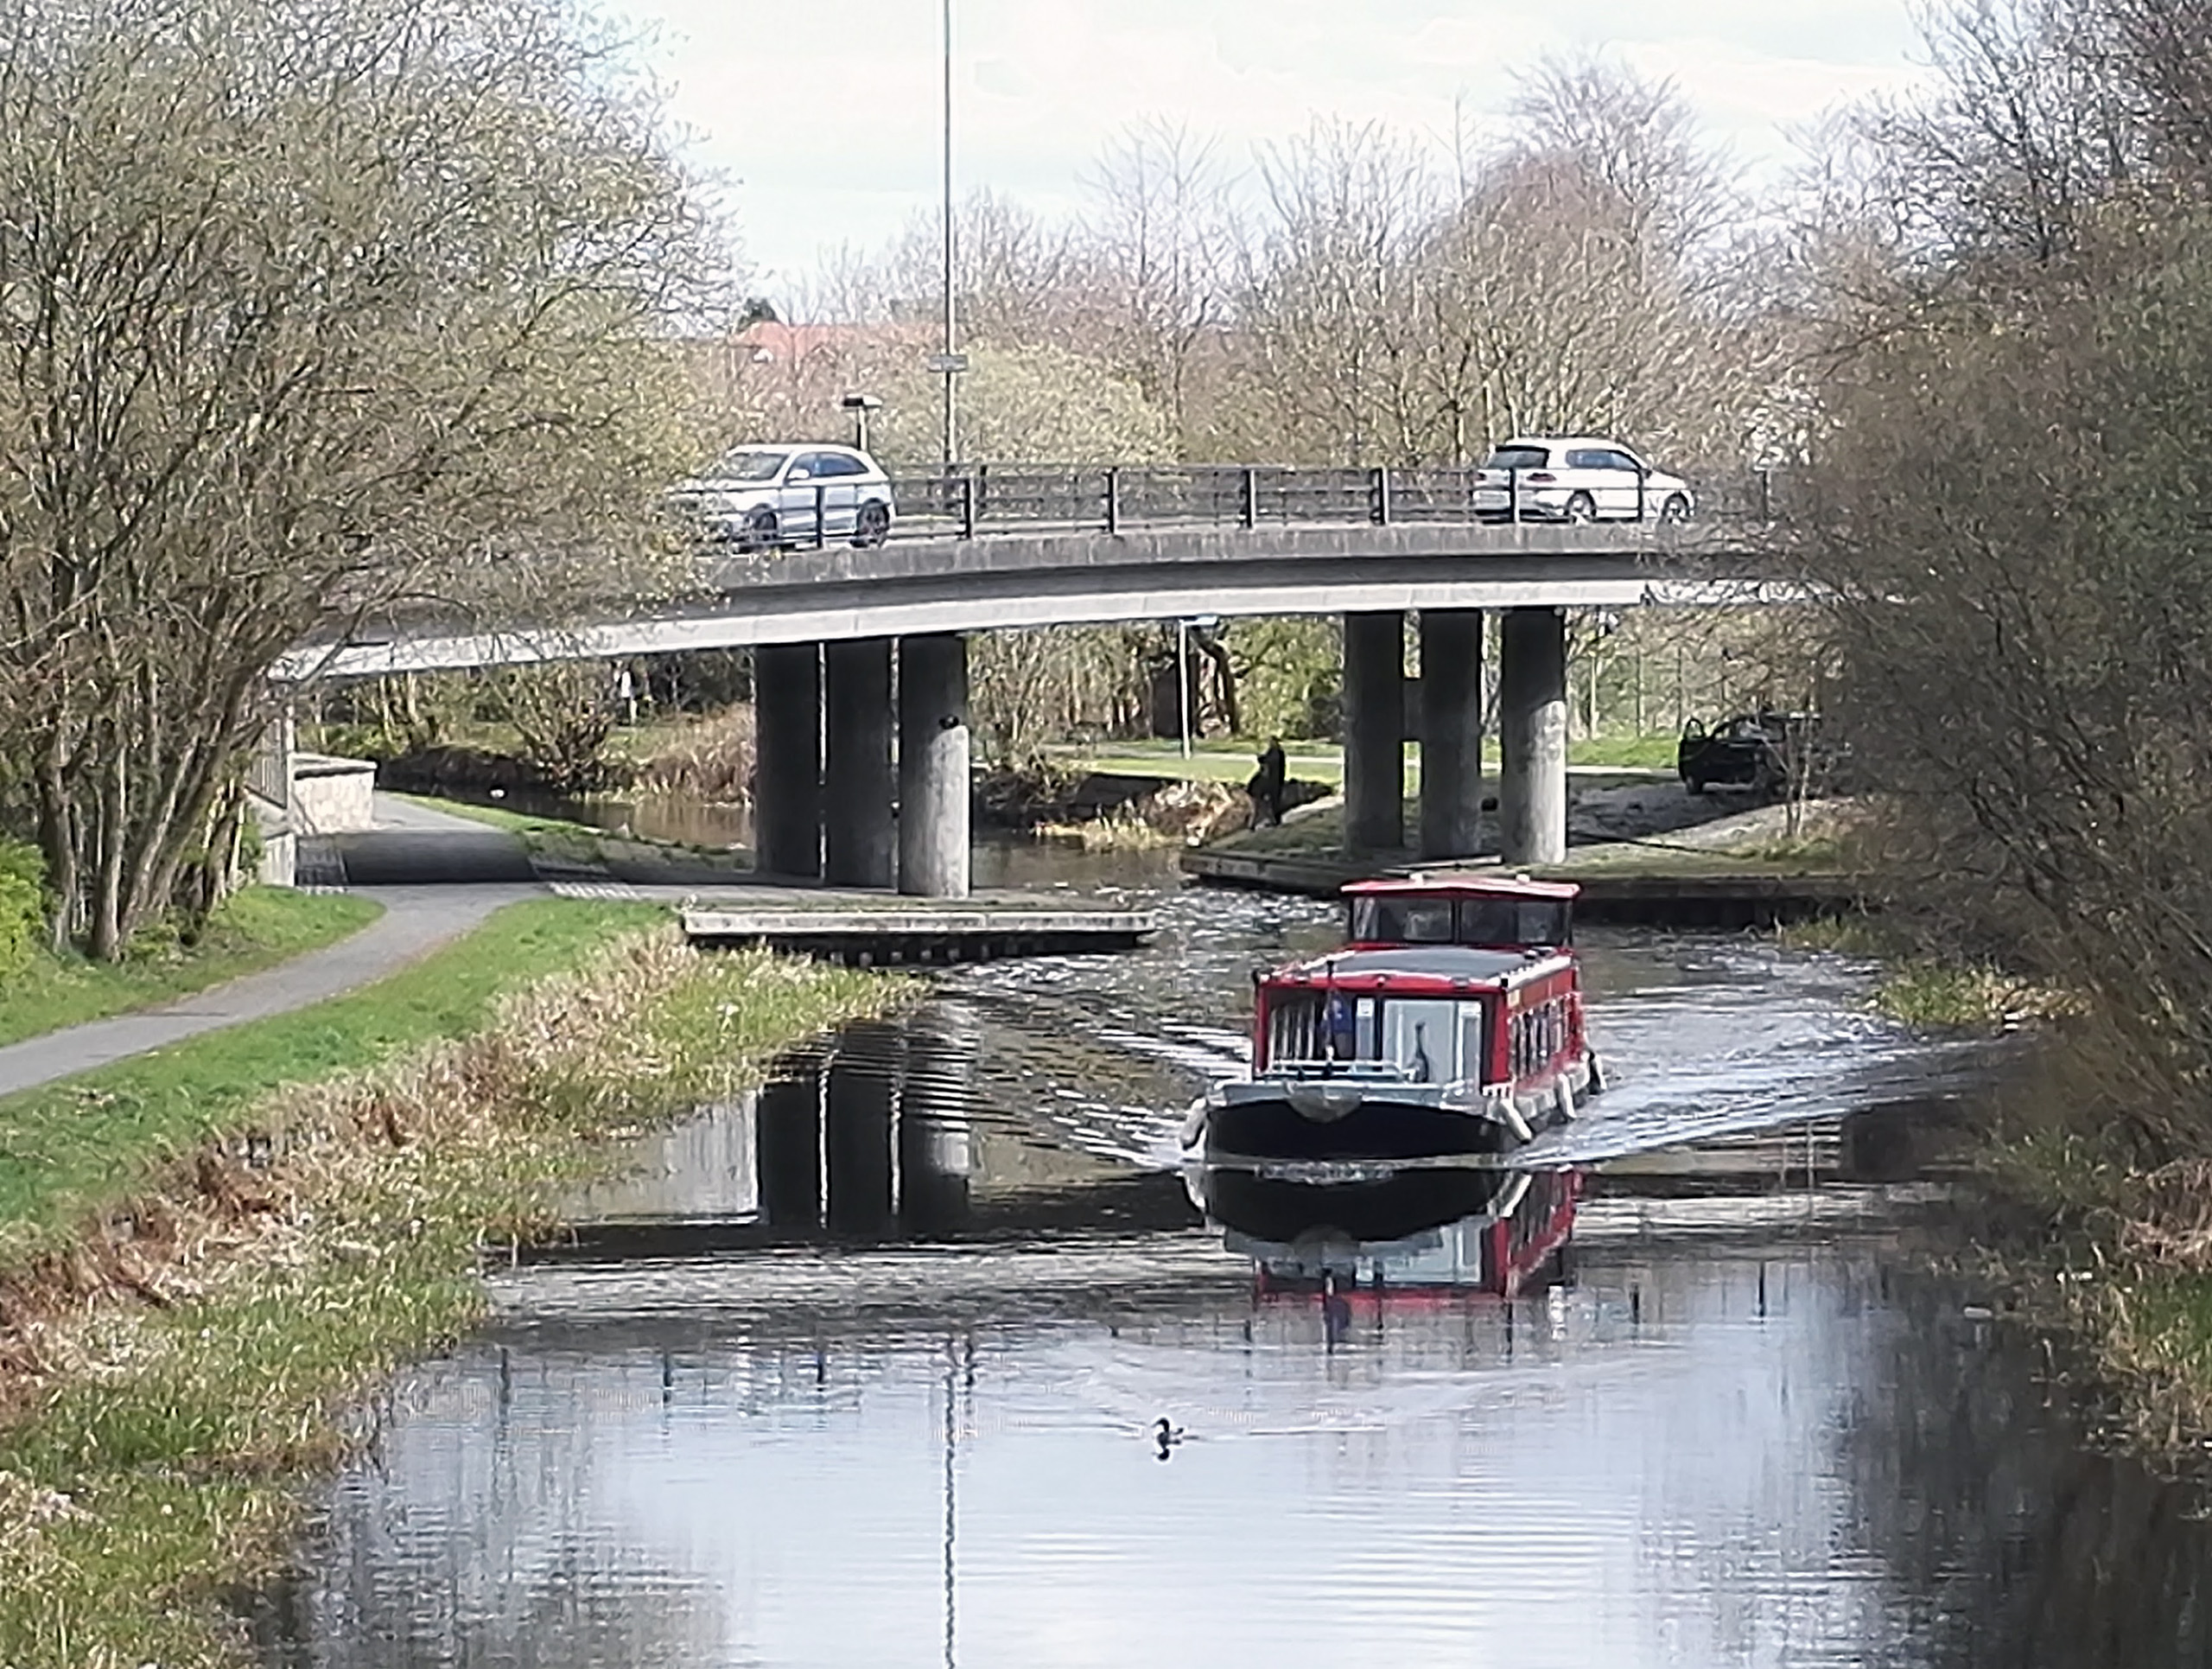 Scottish Canals - Kirkintilloch bridge